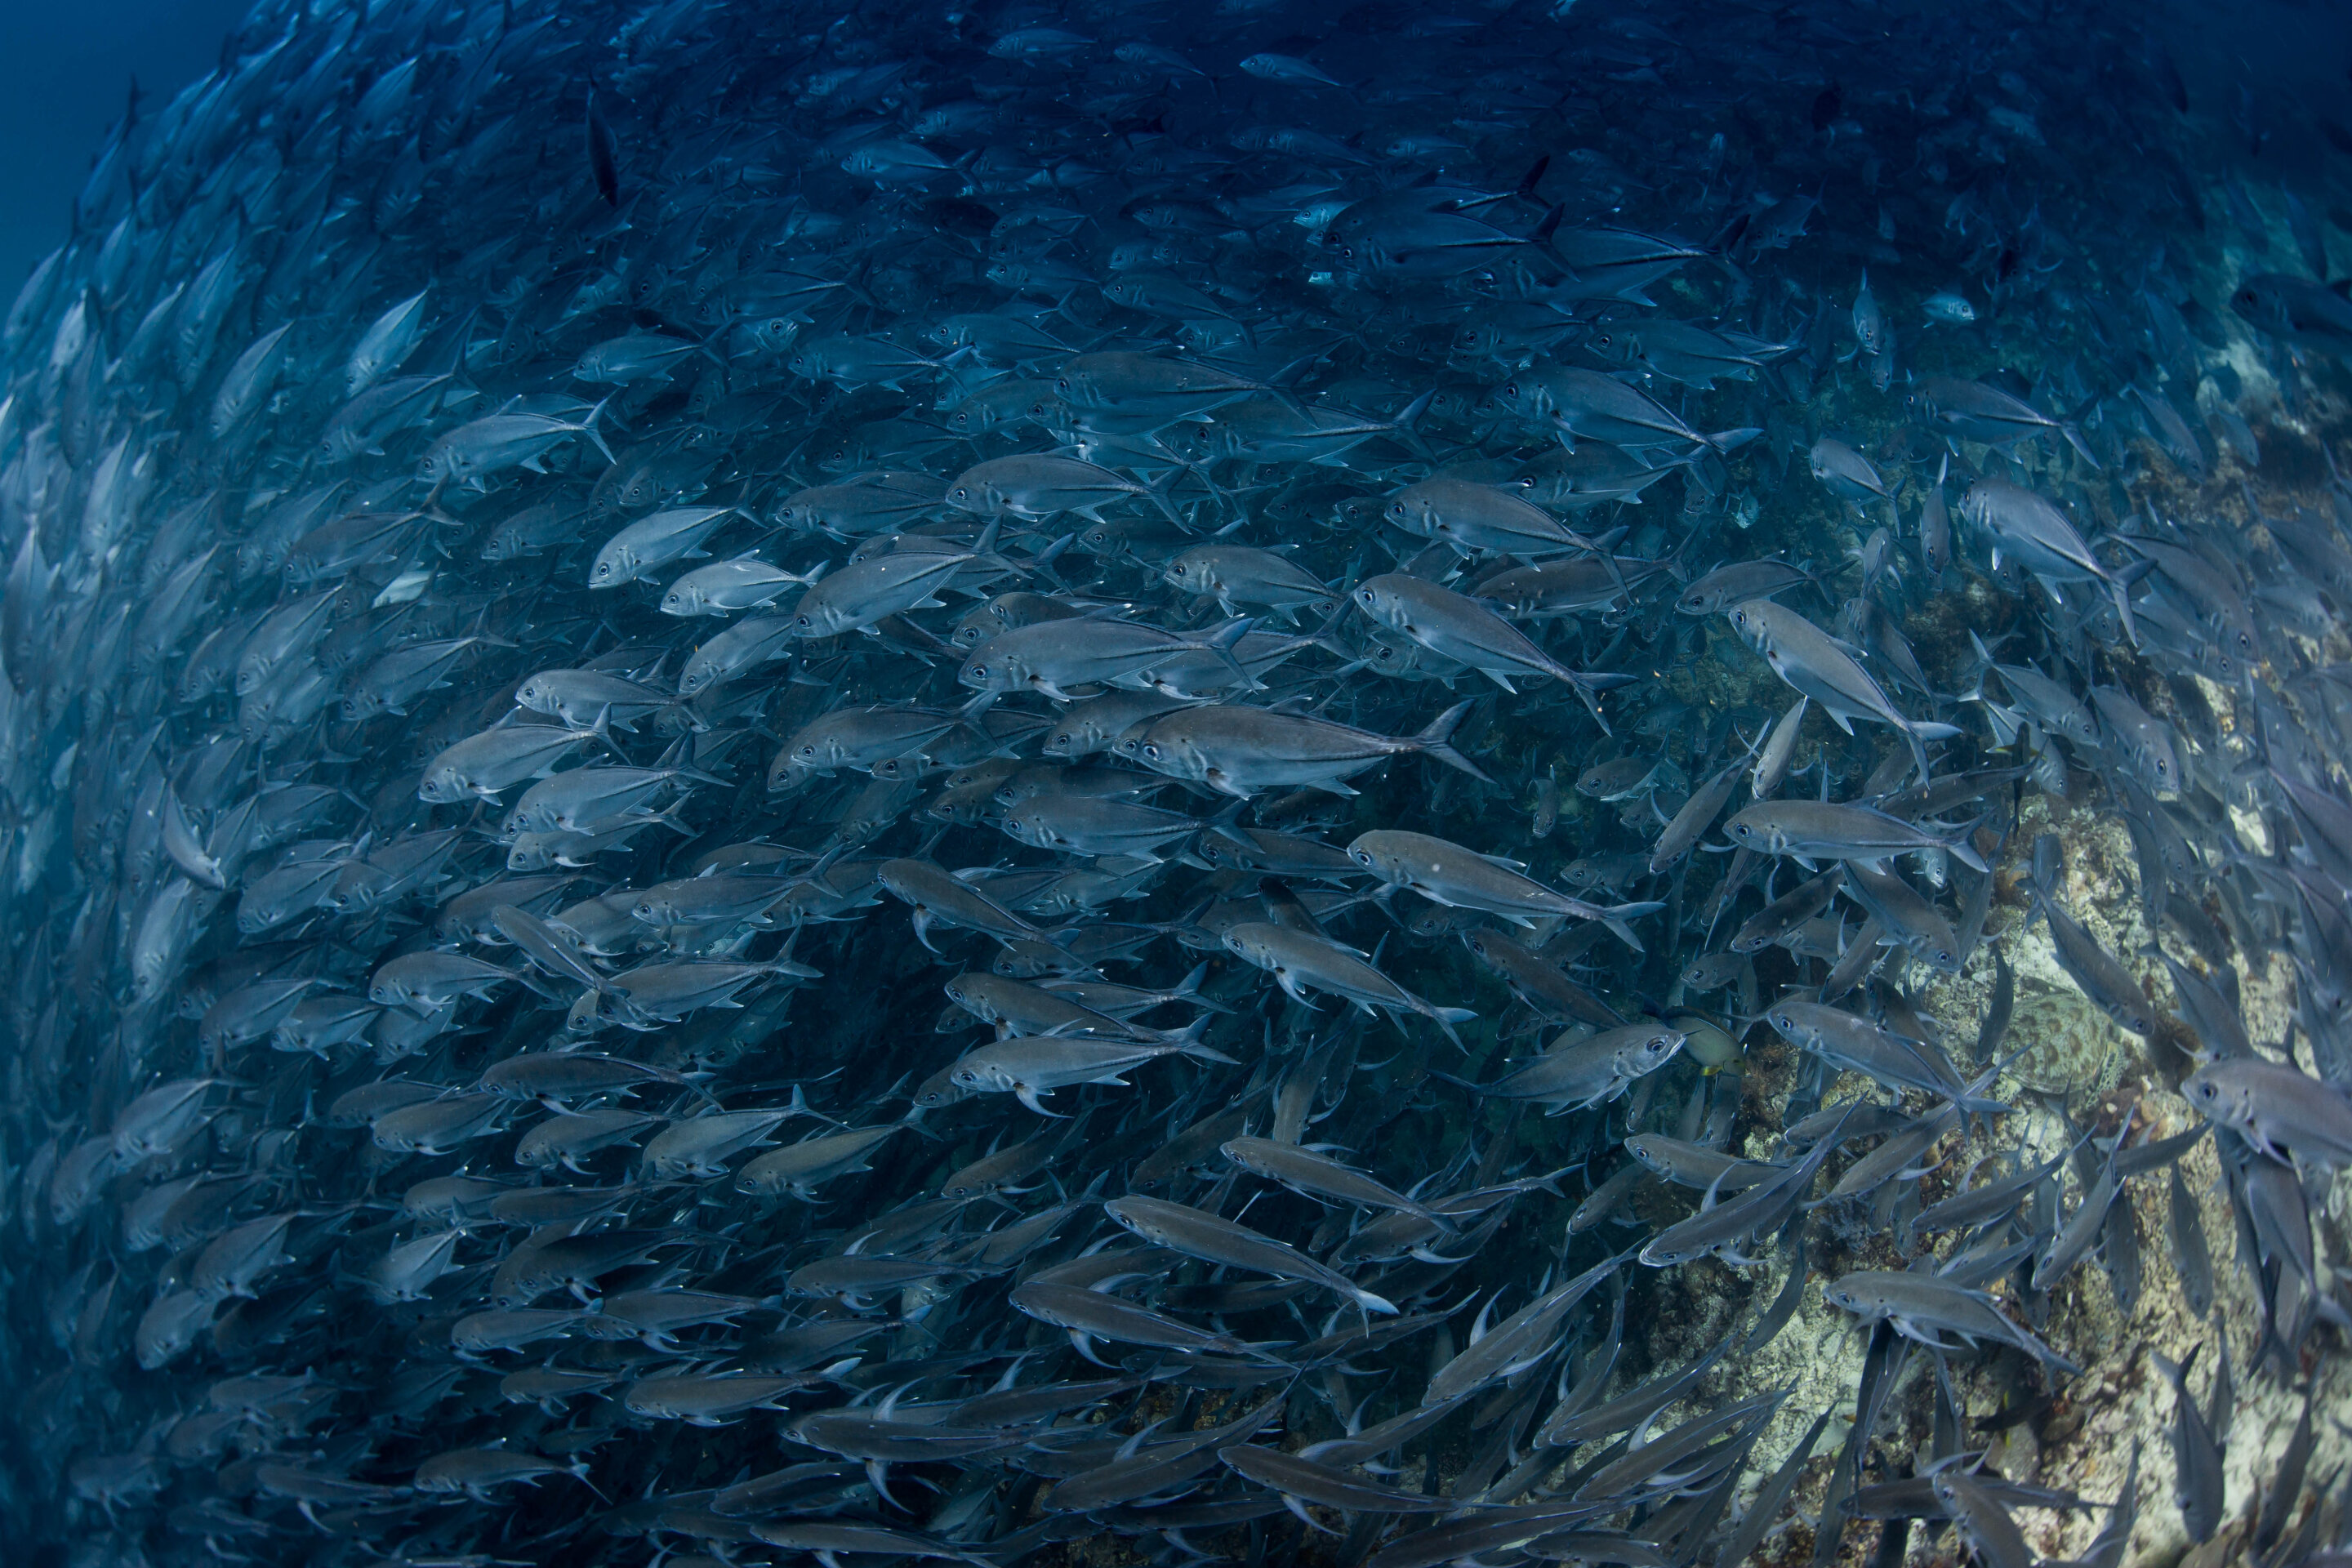 Climate change threatens food security of many countries dependent on fish